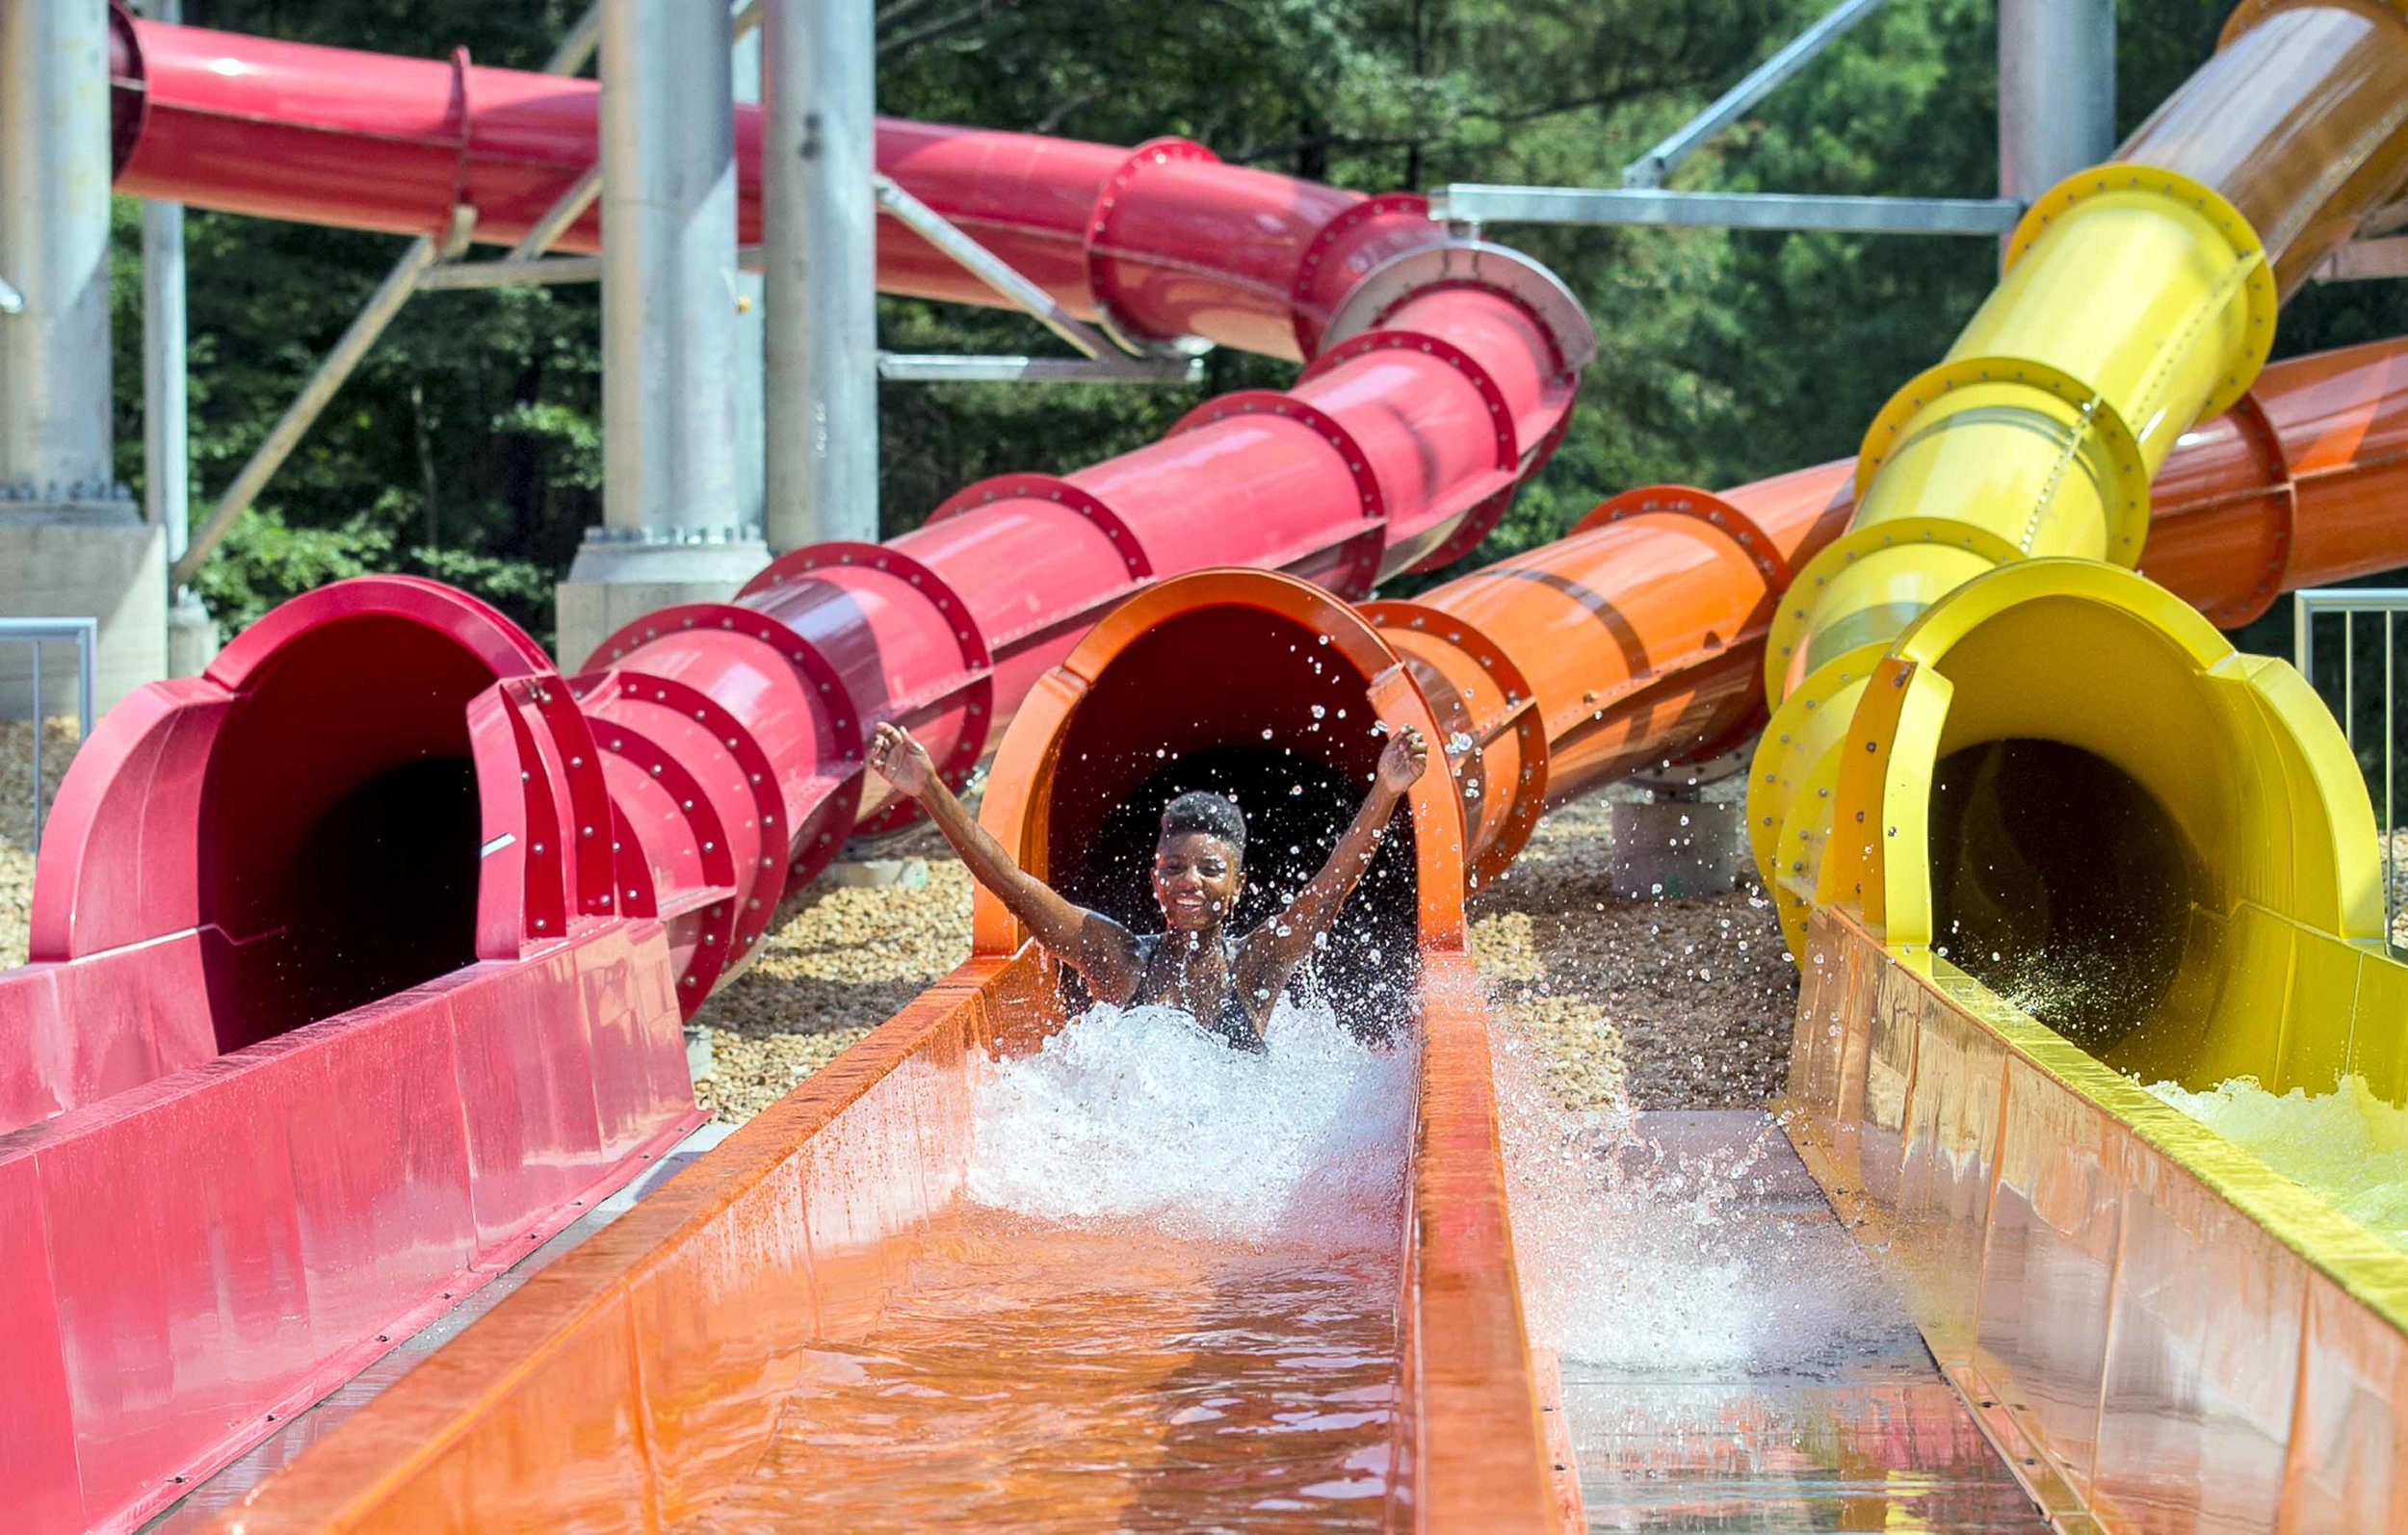 Attractions - From thrilling rides to breathtaking botanical gardens, the Richmond Region's attractions are easily accessible; enjoy one or enjoy them all. A new experience is waiting for you!